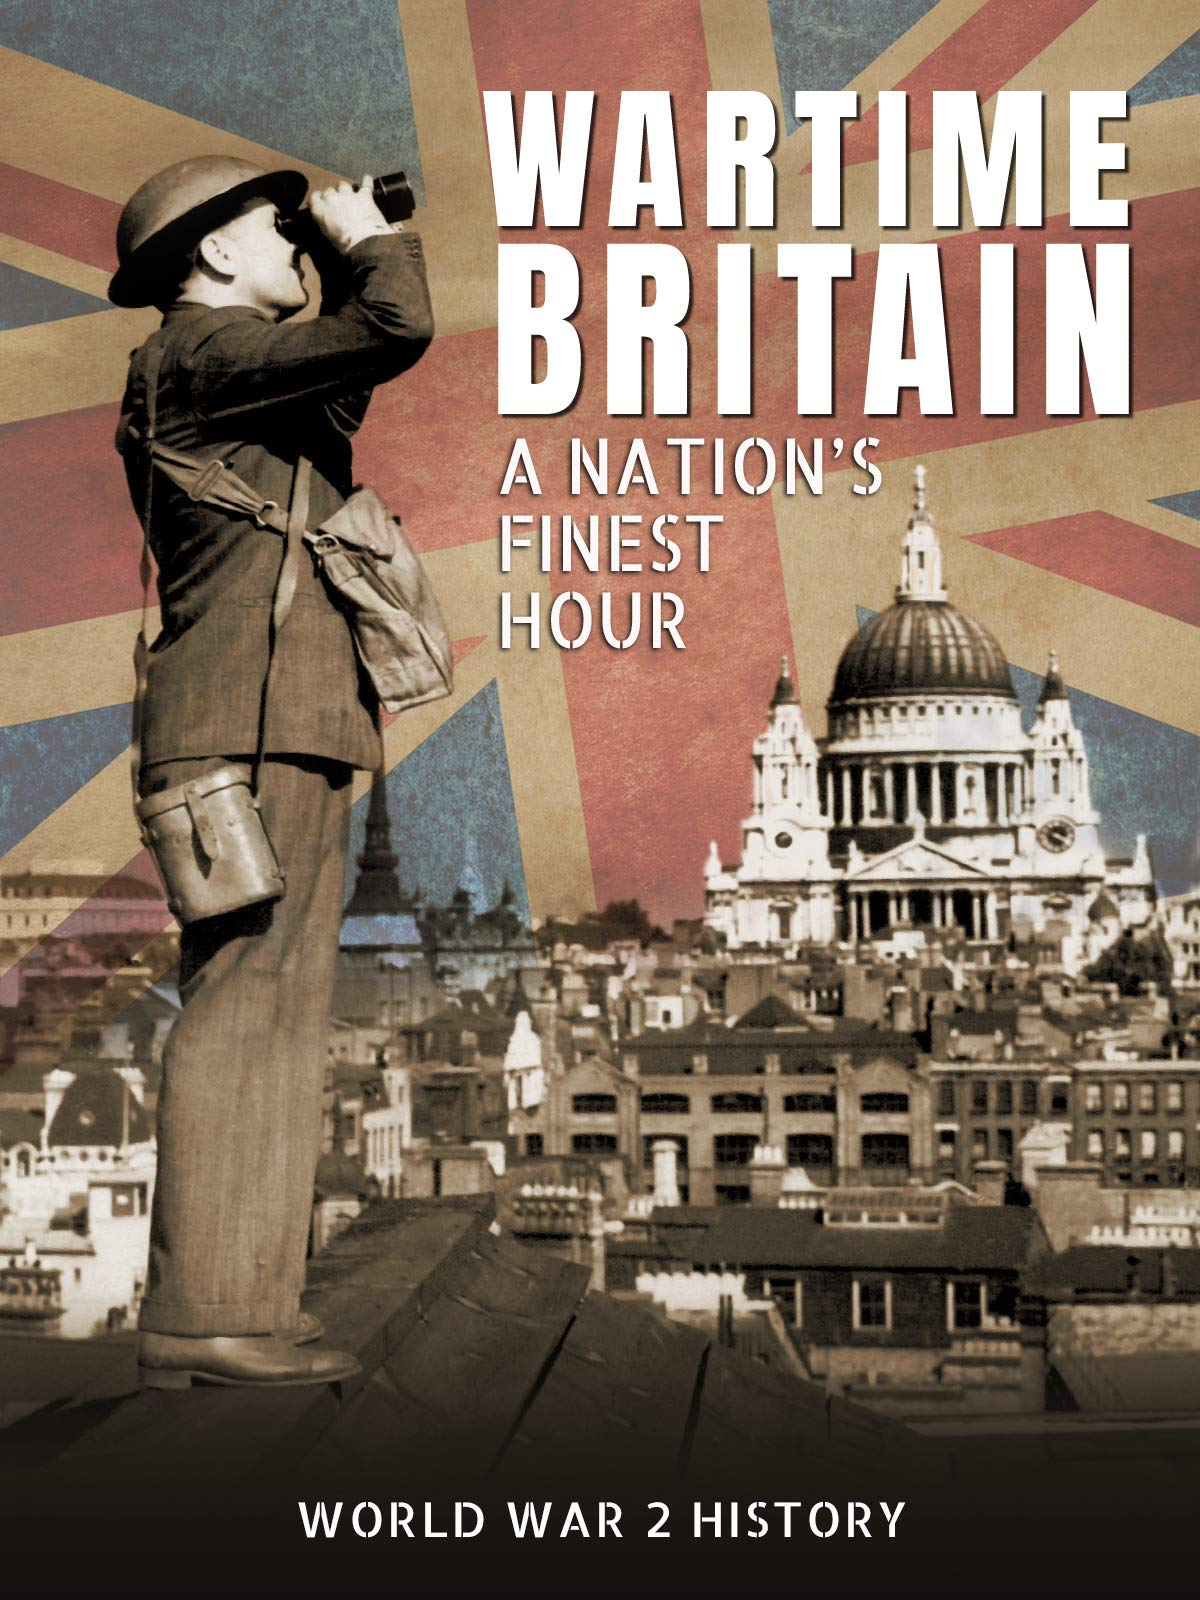 Wartime Britain: A Nation's Finest Hour (World War 2 History)